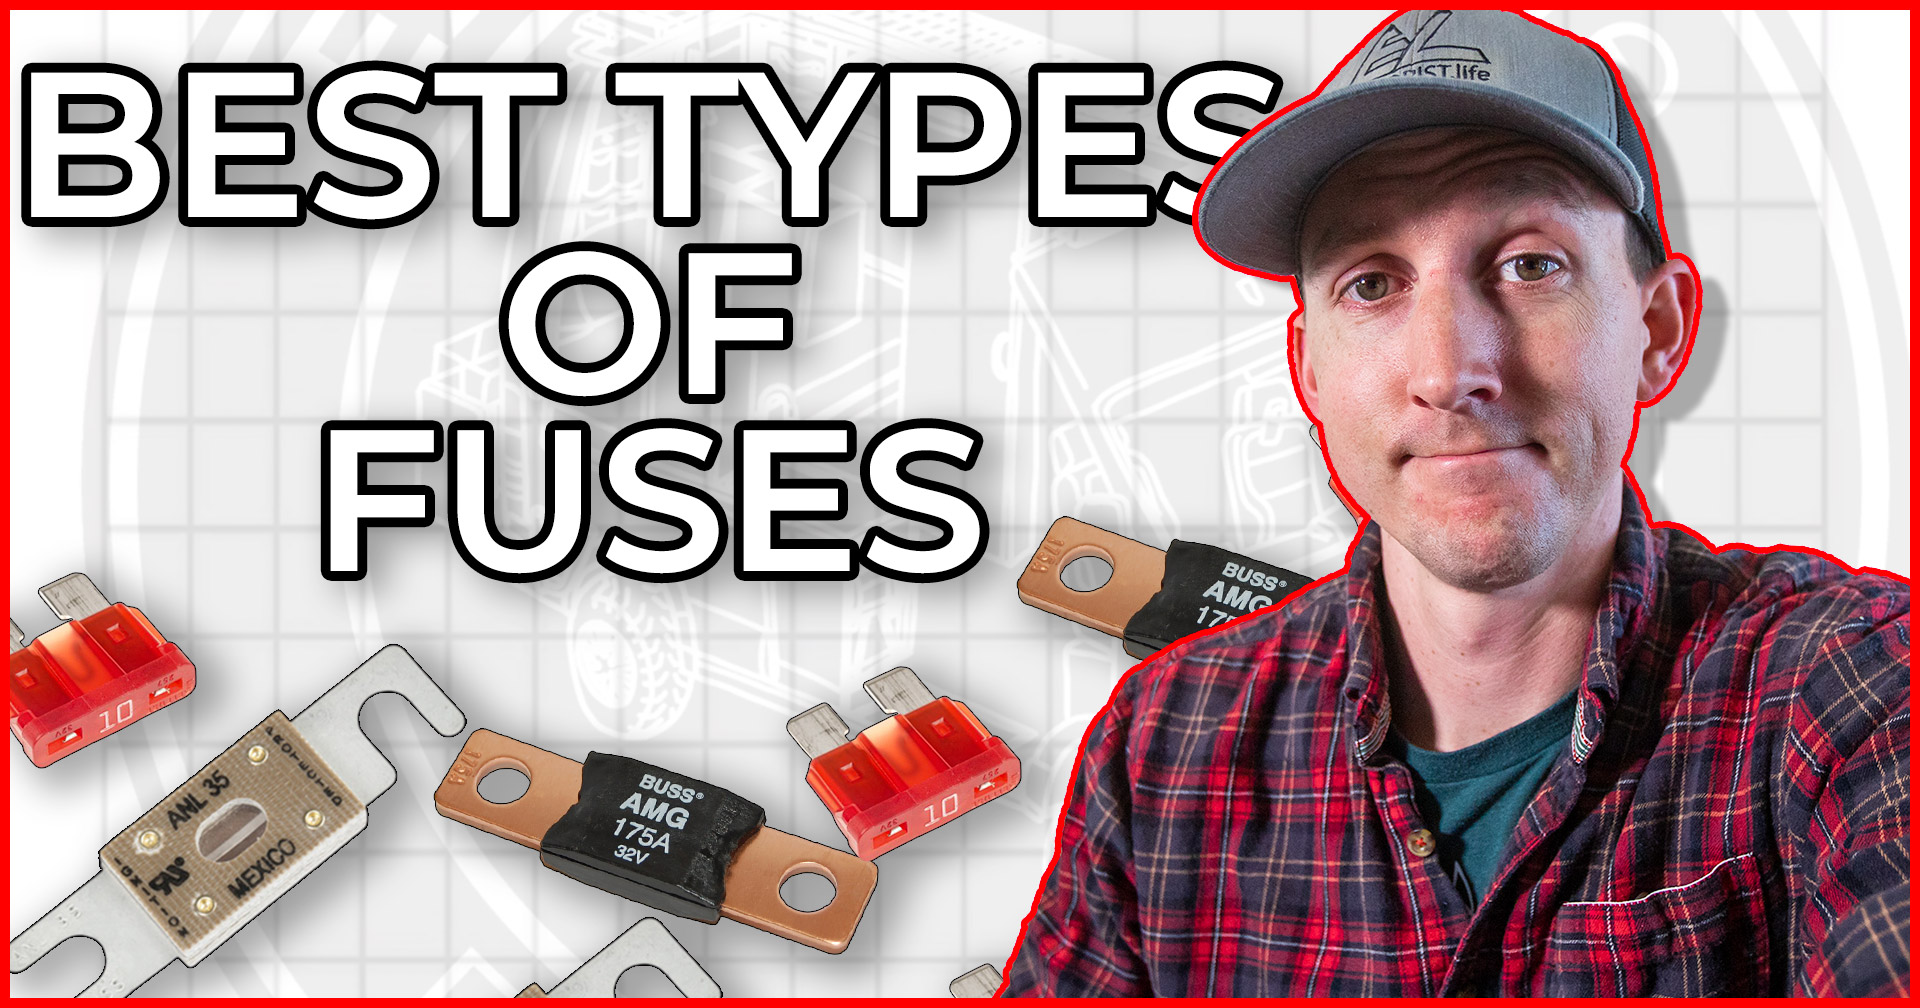 Best Fuses & Fuse Holders for a DIY Camper Electrical Install